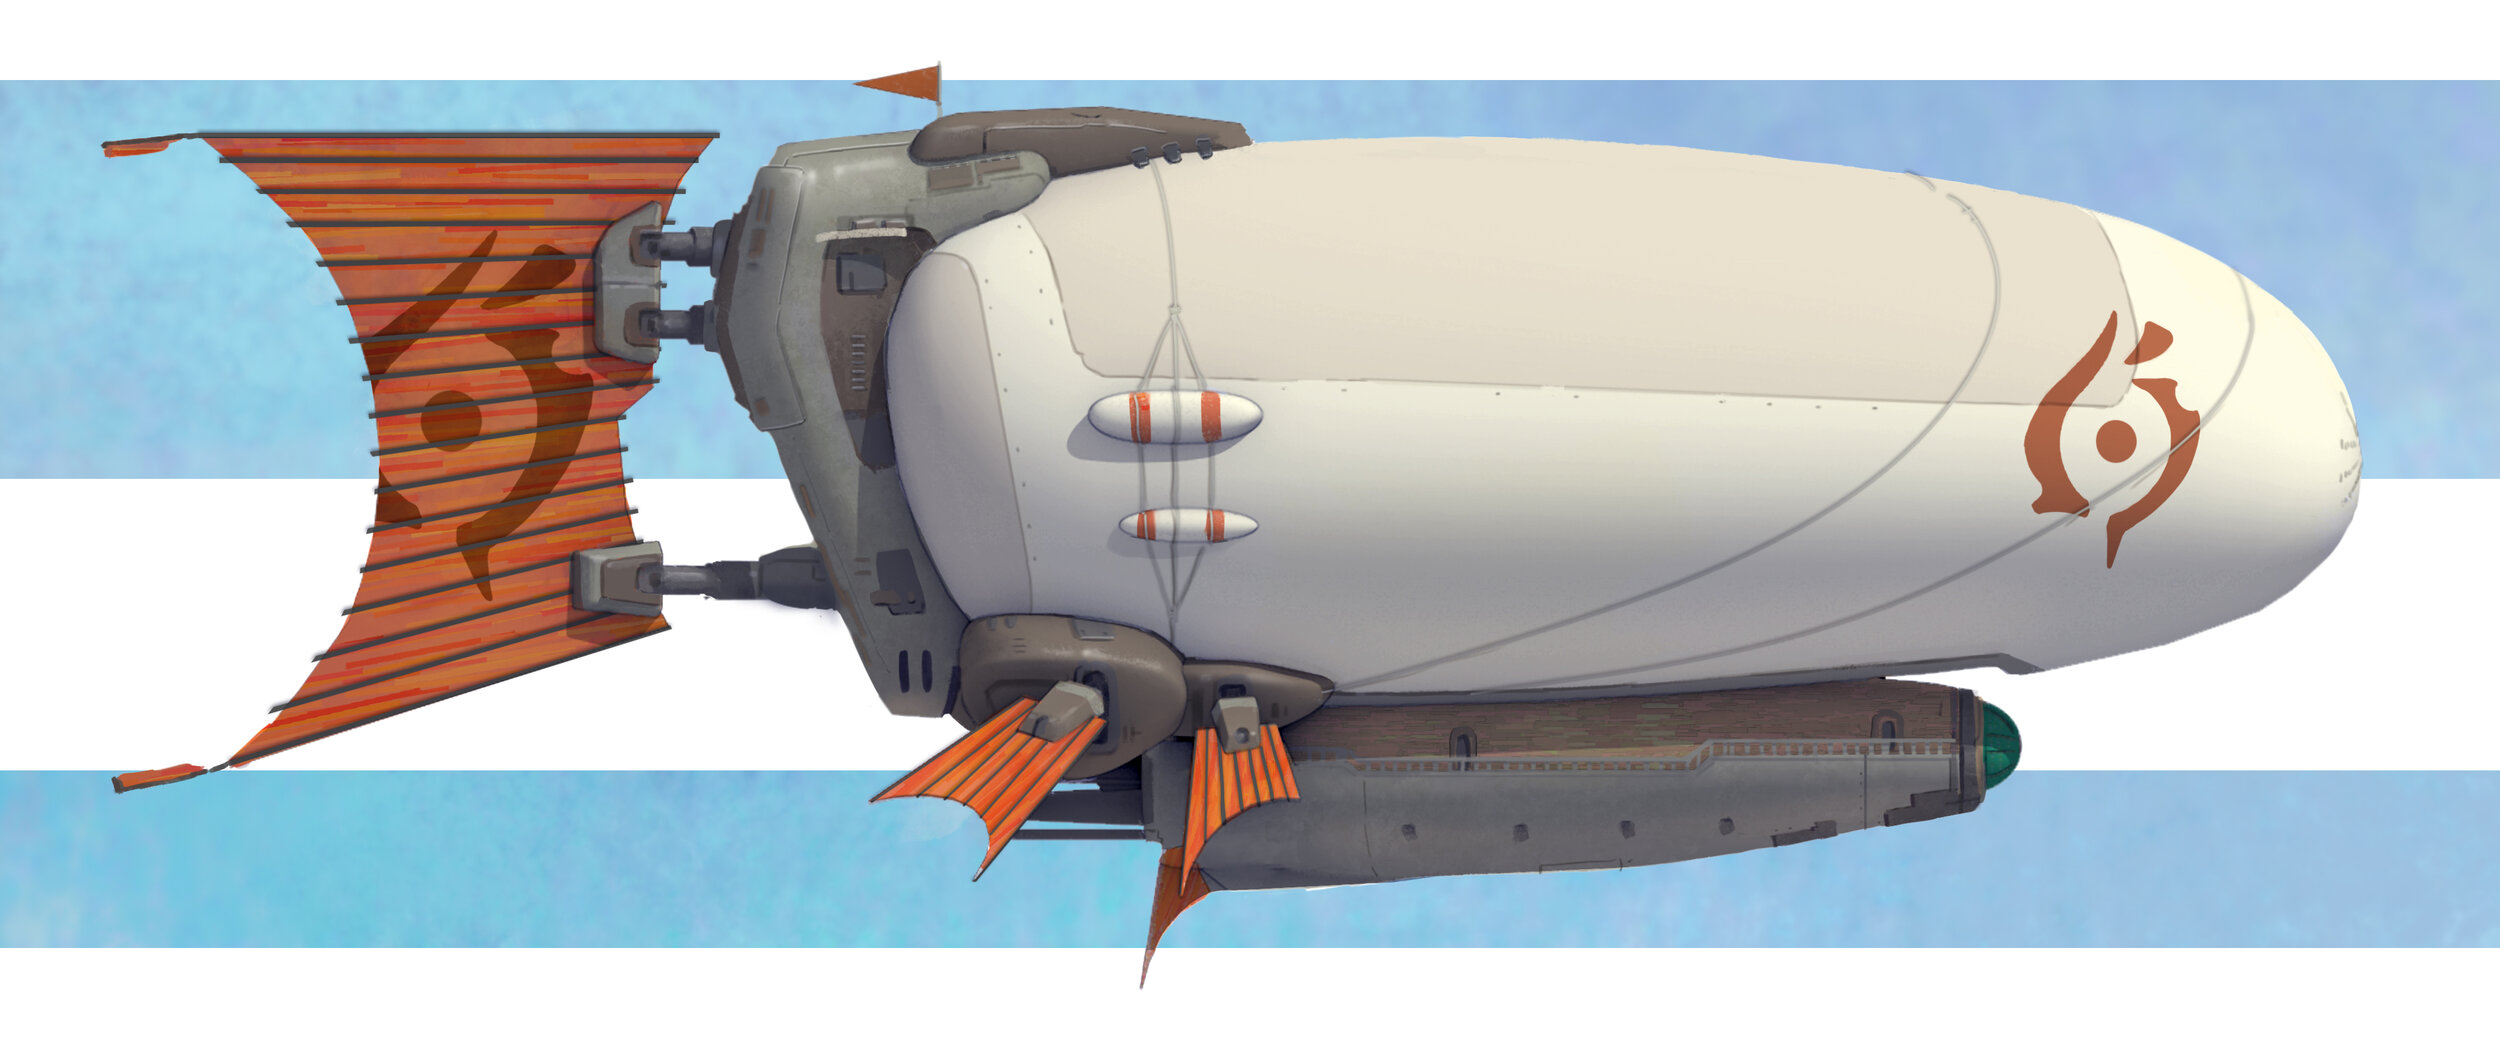 Their main way of transportation are blimps, which serve as war, trade and civilian vessels.